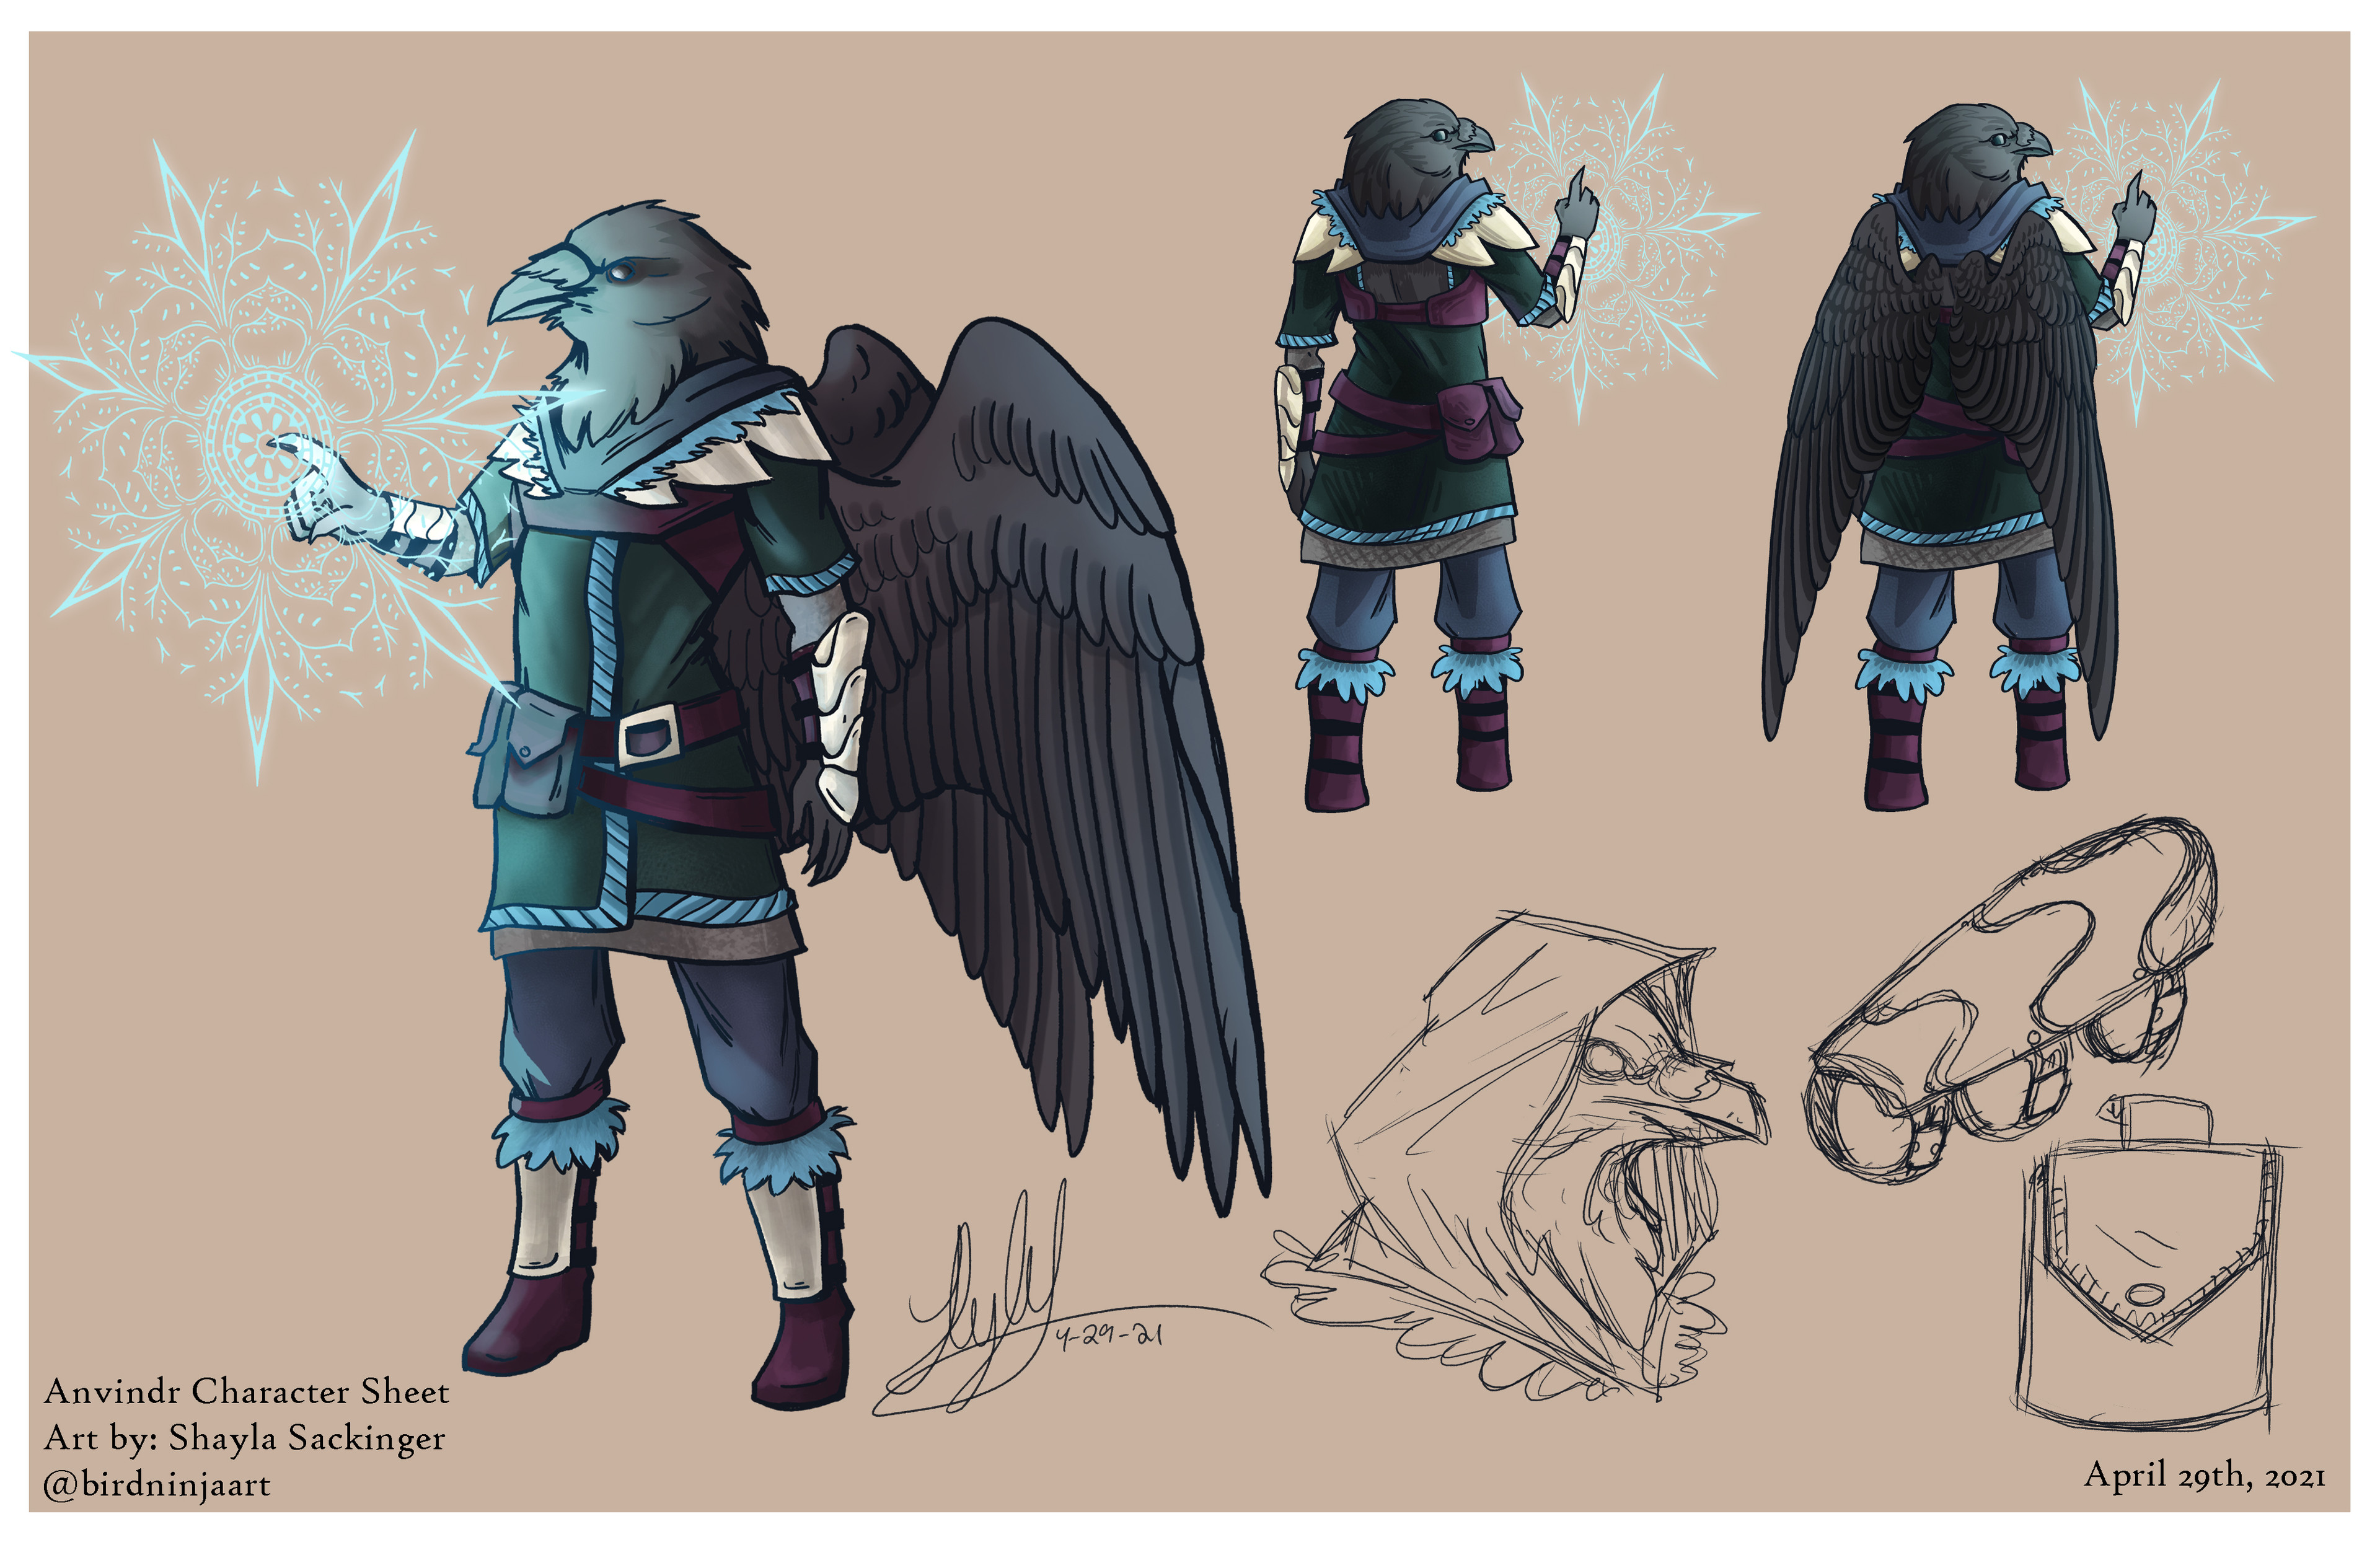 The final renders of my raven character, Anvindr.